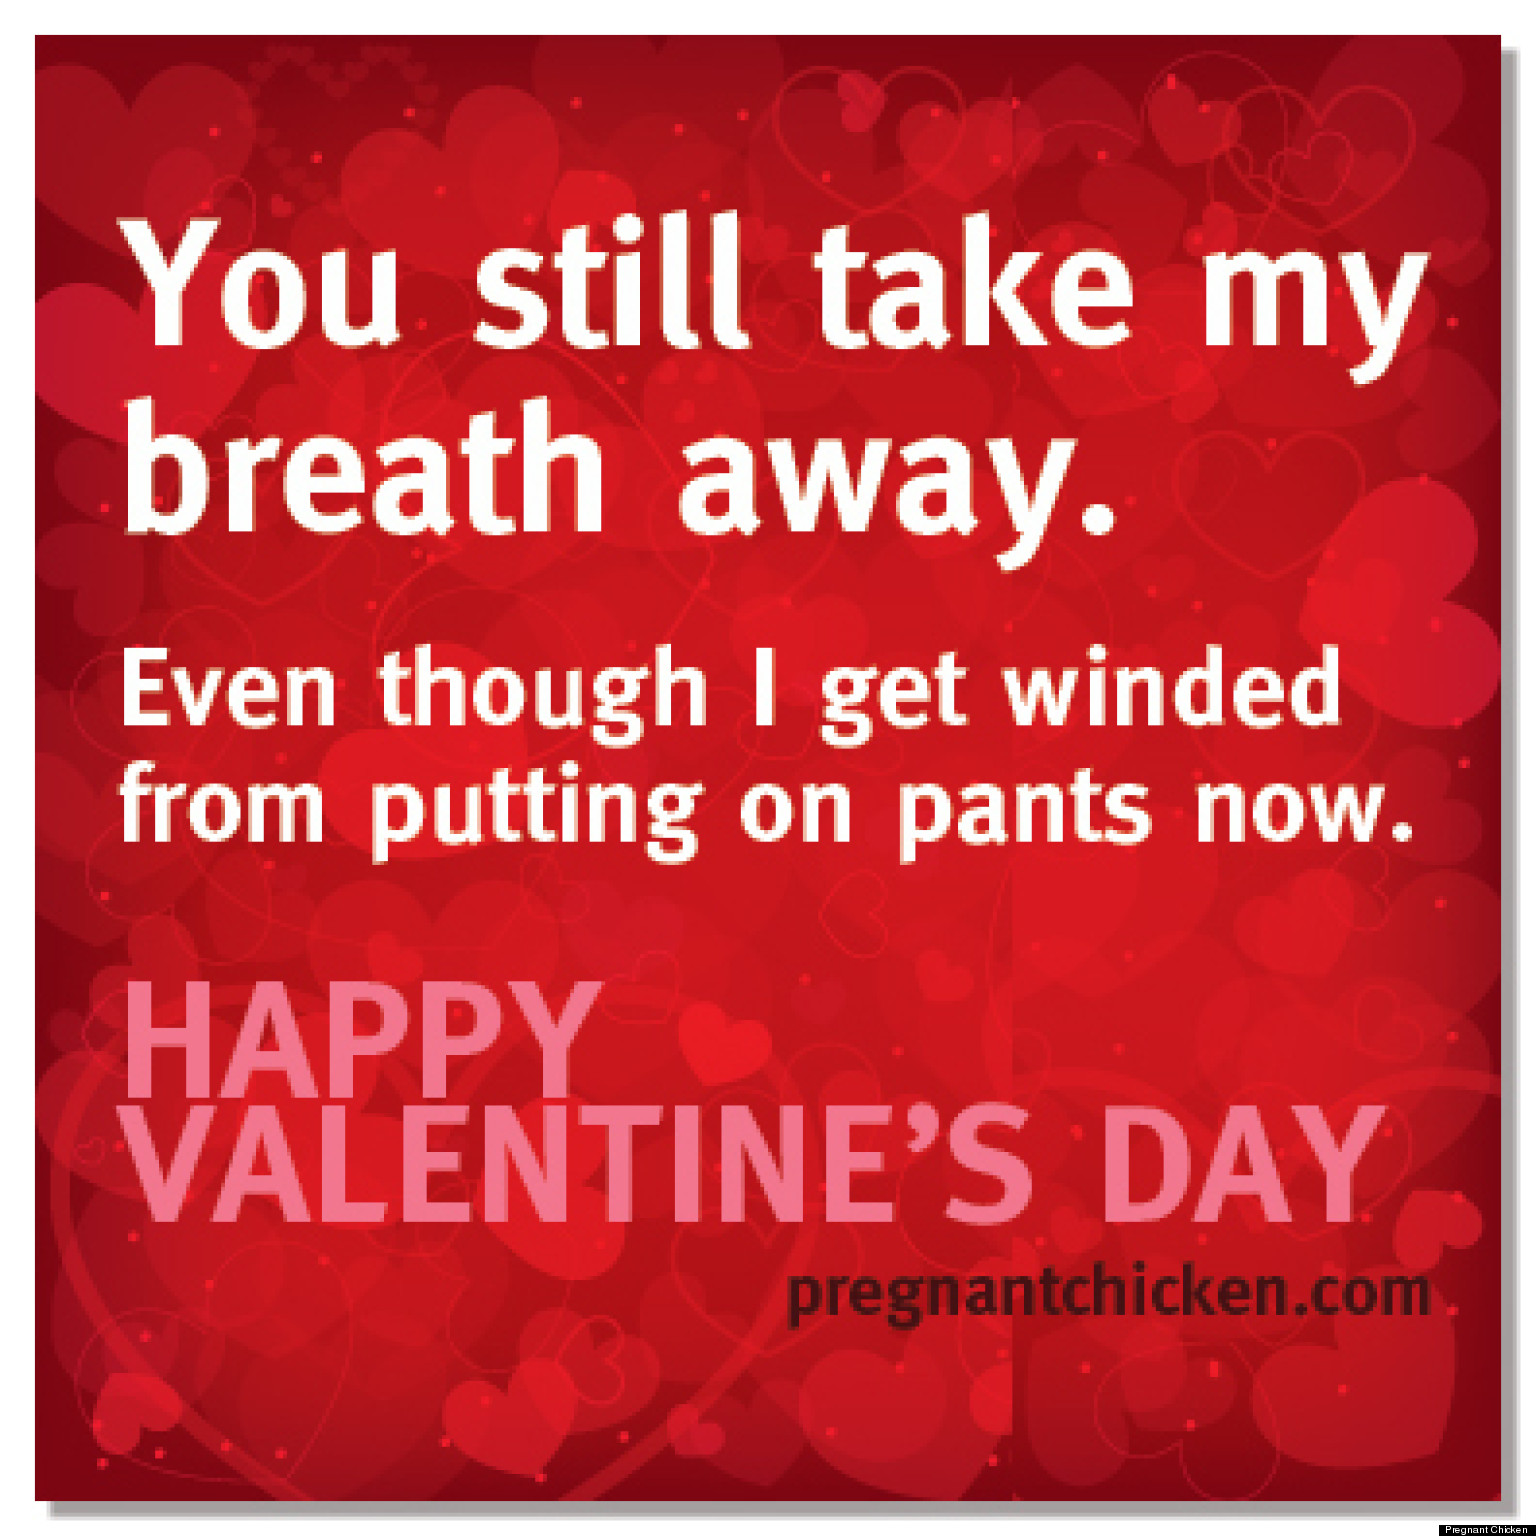 Funny valentines for pregnant women to give their partners photos funny valentines for pregnant women to give their partners photos huffpost m4hsunfo